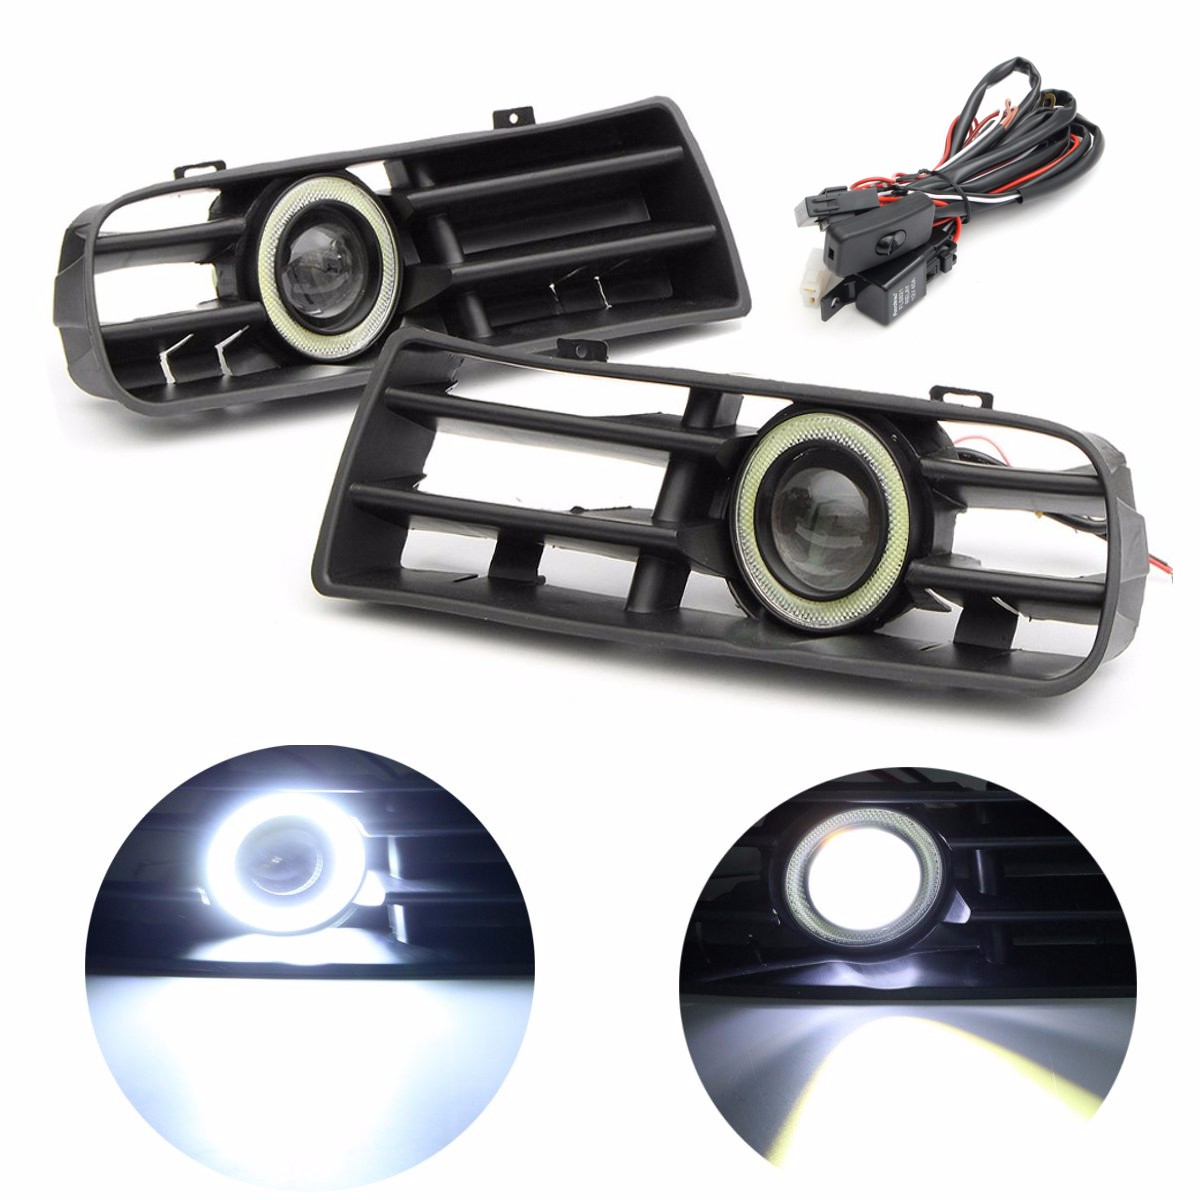 2x LED Fog Lights Angel Eyes Lamp Front Bumper Grille Grill Cover Foglight Kit For VW Golf MK4 98-04 front bumper fog lamp grille led convex lens fog light angel eyes for vw polo 2001 2002 2003 2004 2005 drl car accessory p364